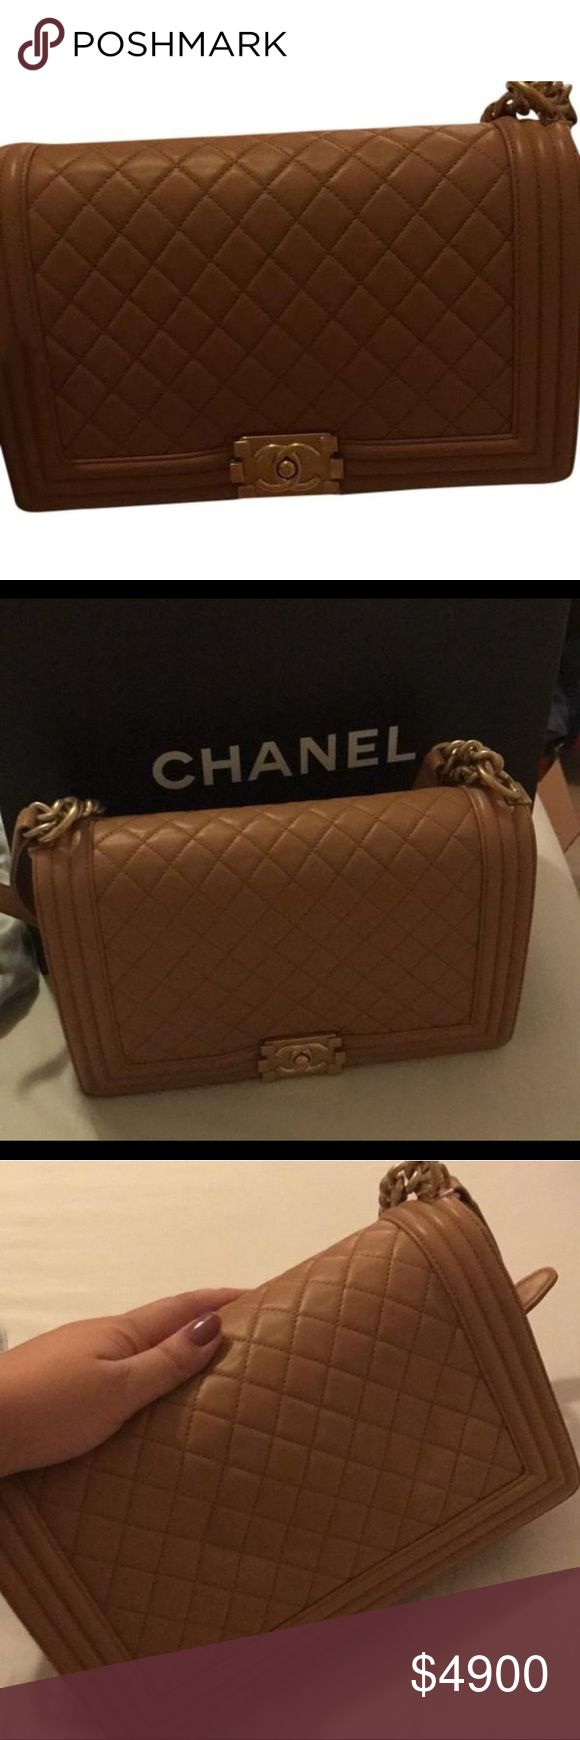 """Chanel Le Boy Camel Cross Body Bag ❗️❗️ On Sale ❗️❗️ Chanel Le Boy Camel Cross Body Bag Condition: Brand New Size 11""""L x 3""""H x 7""""W 100% authentic or your money back guaranteed. Cheaper out of posh due to high fees, cheaper through PayPal email me at luxurydesigners12 yahoo com CHANEL Bags Crossbody Bags"""